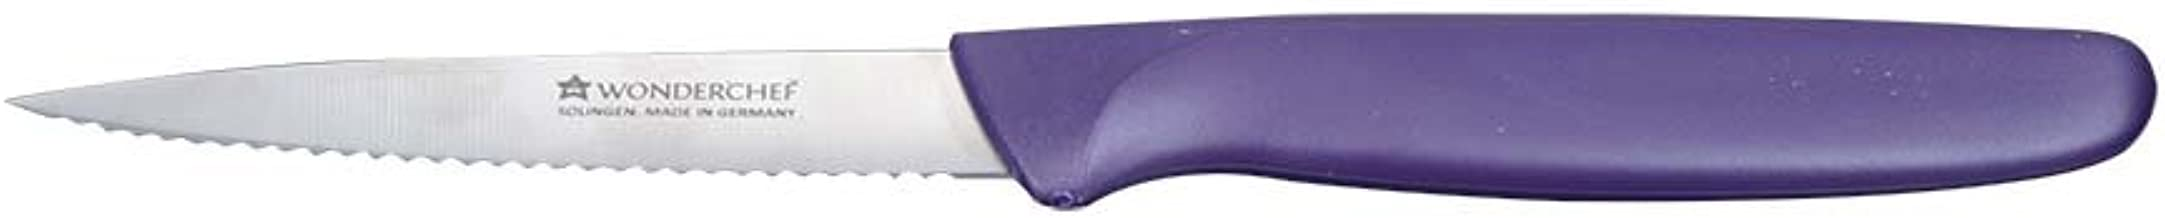 Wonderchef Solingen Smart-Line Serrated Stainless Steel Chef Knife 10cm Purple